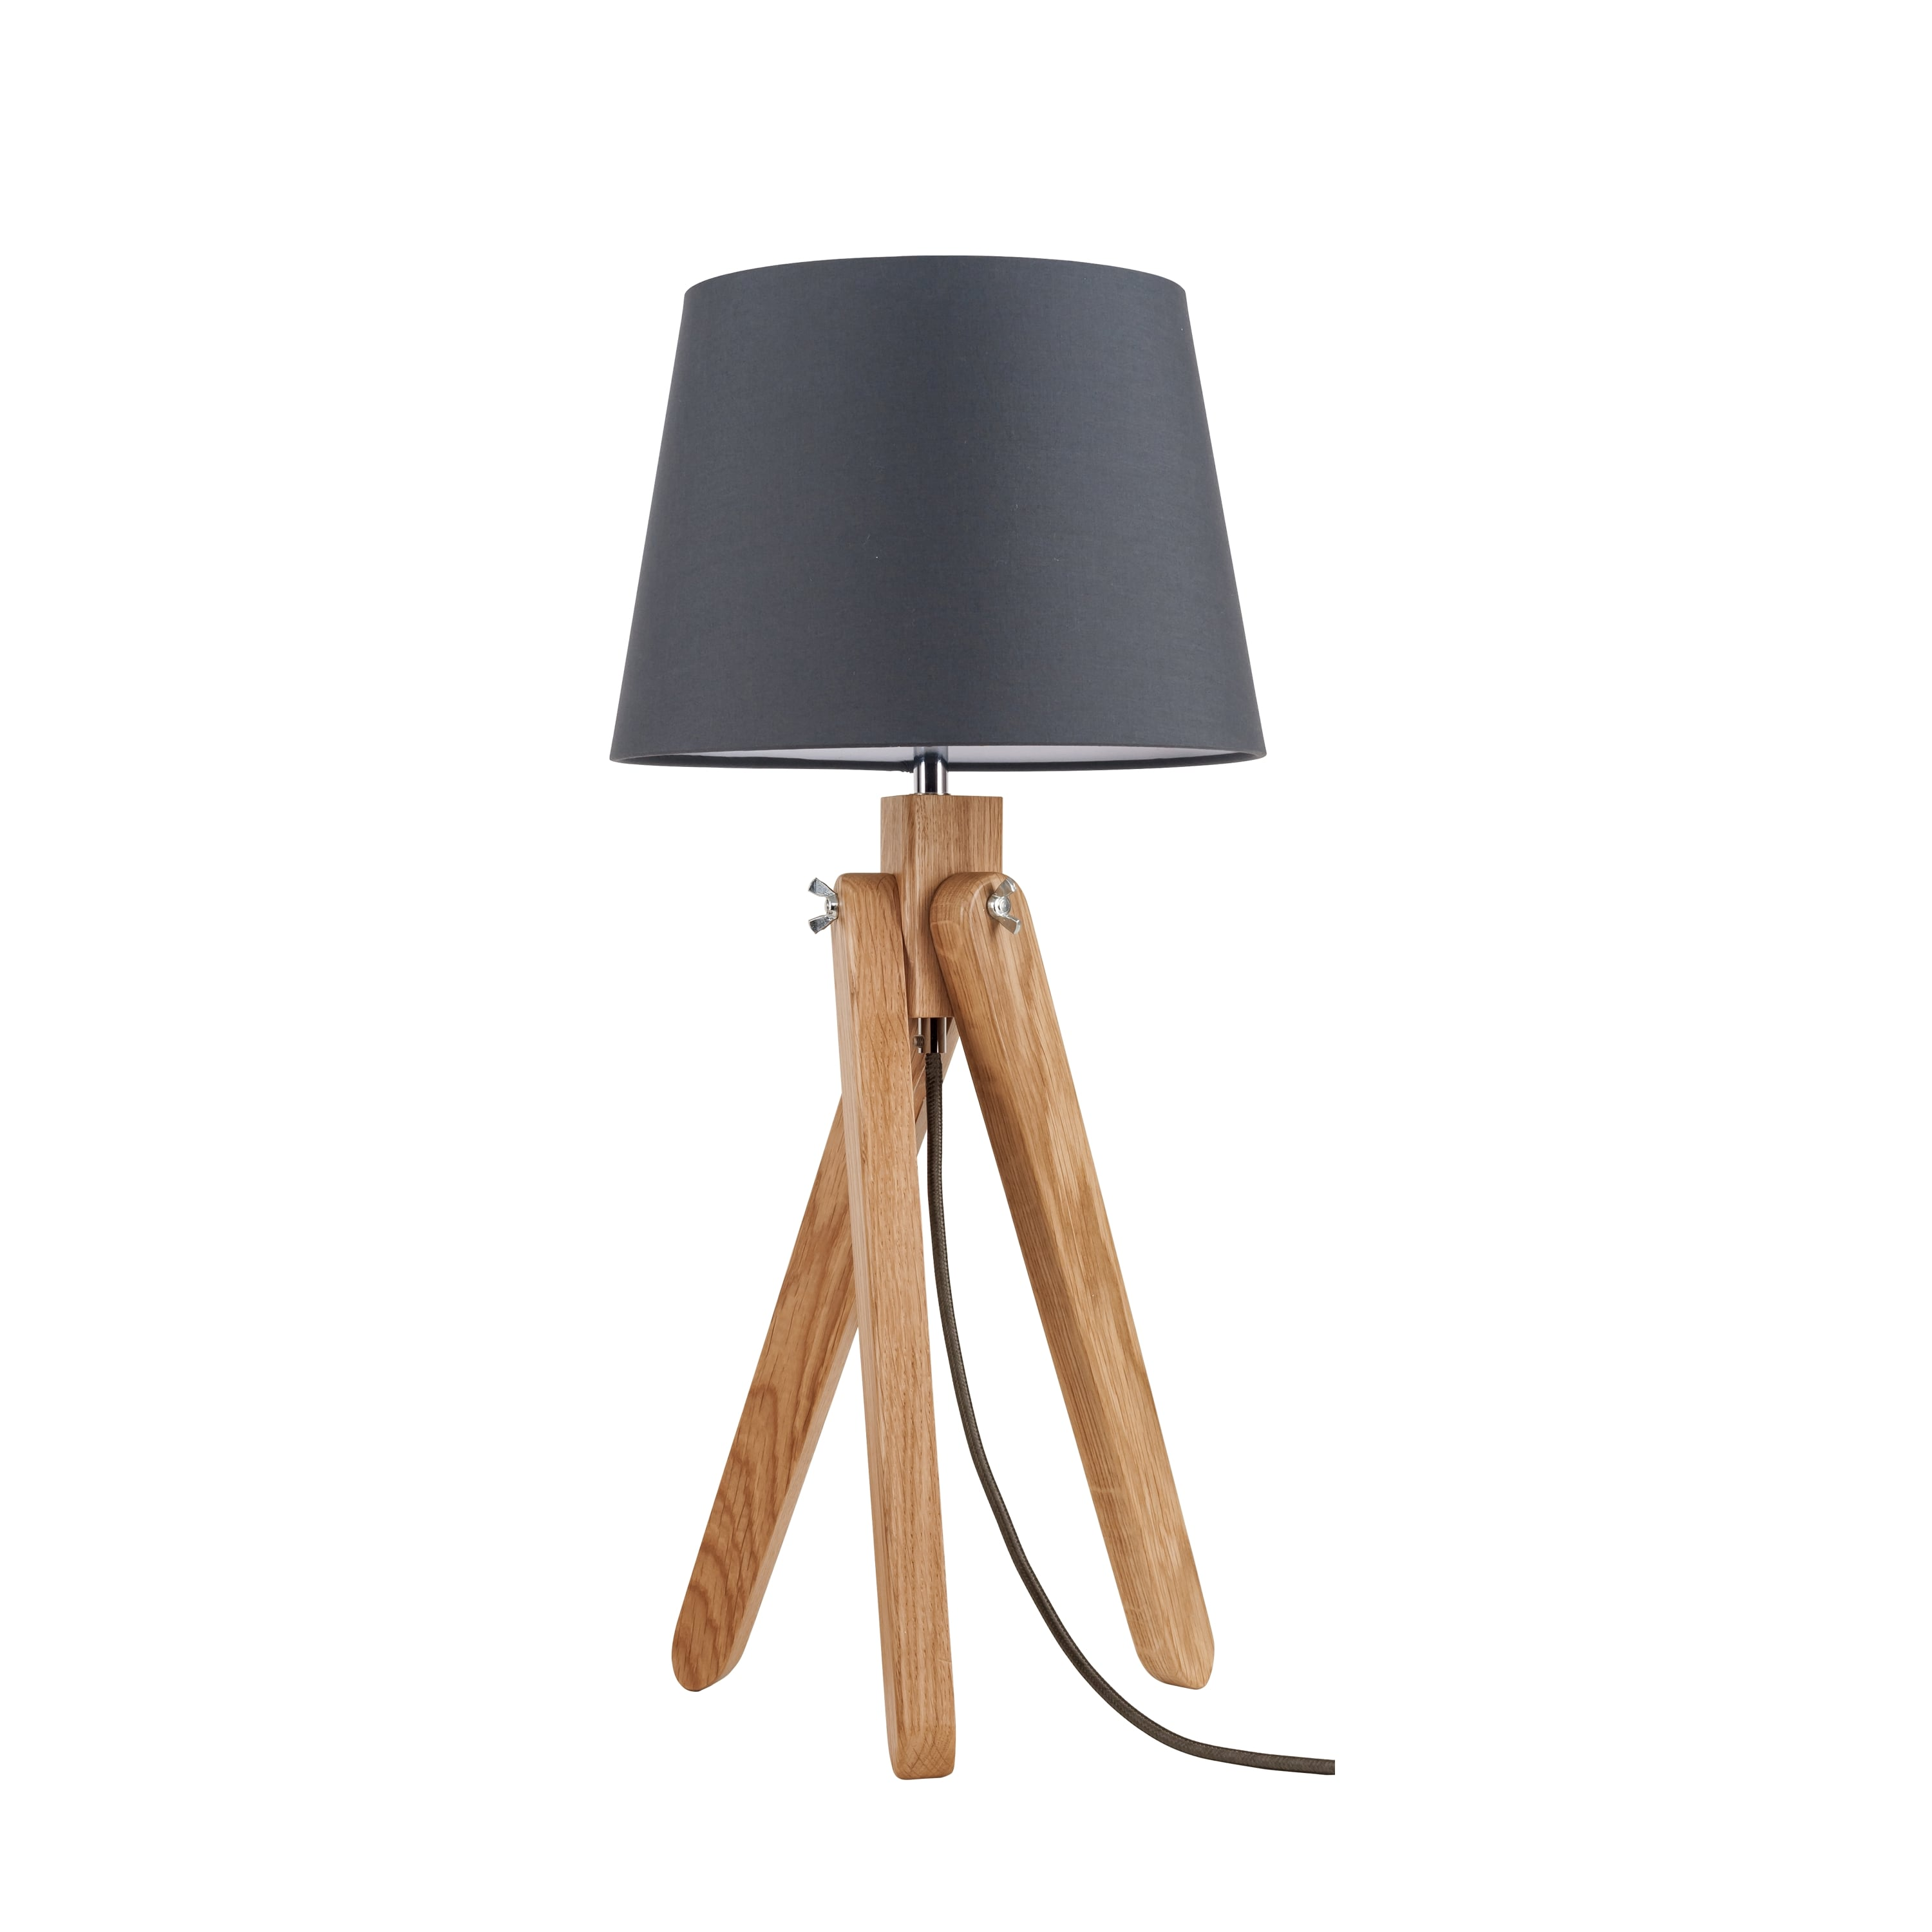 Table lamp Rune dąb / anthracite / anthracite E27 60W